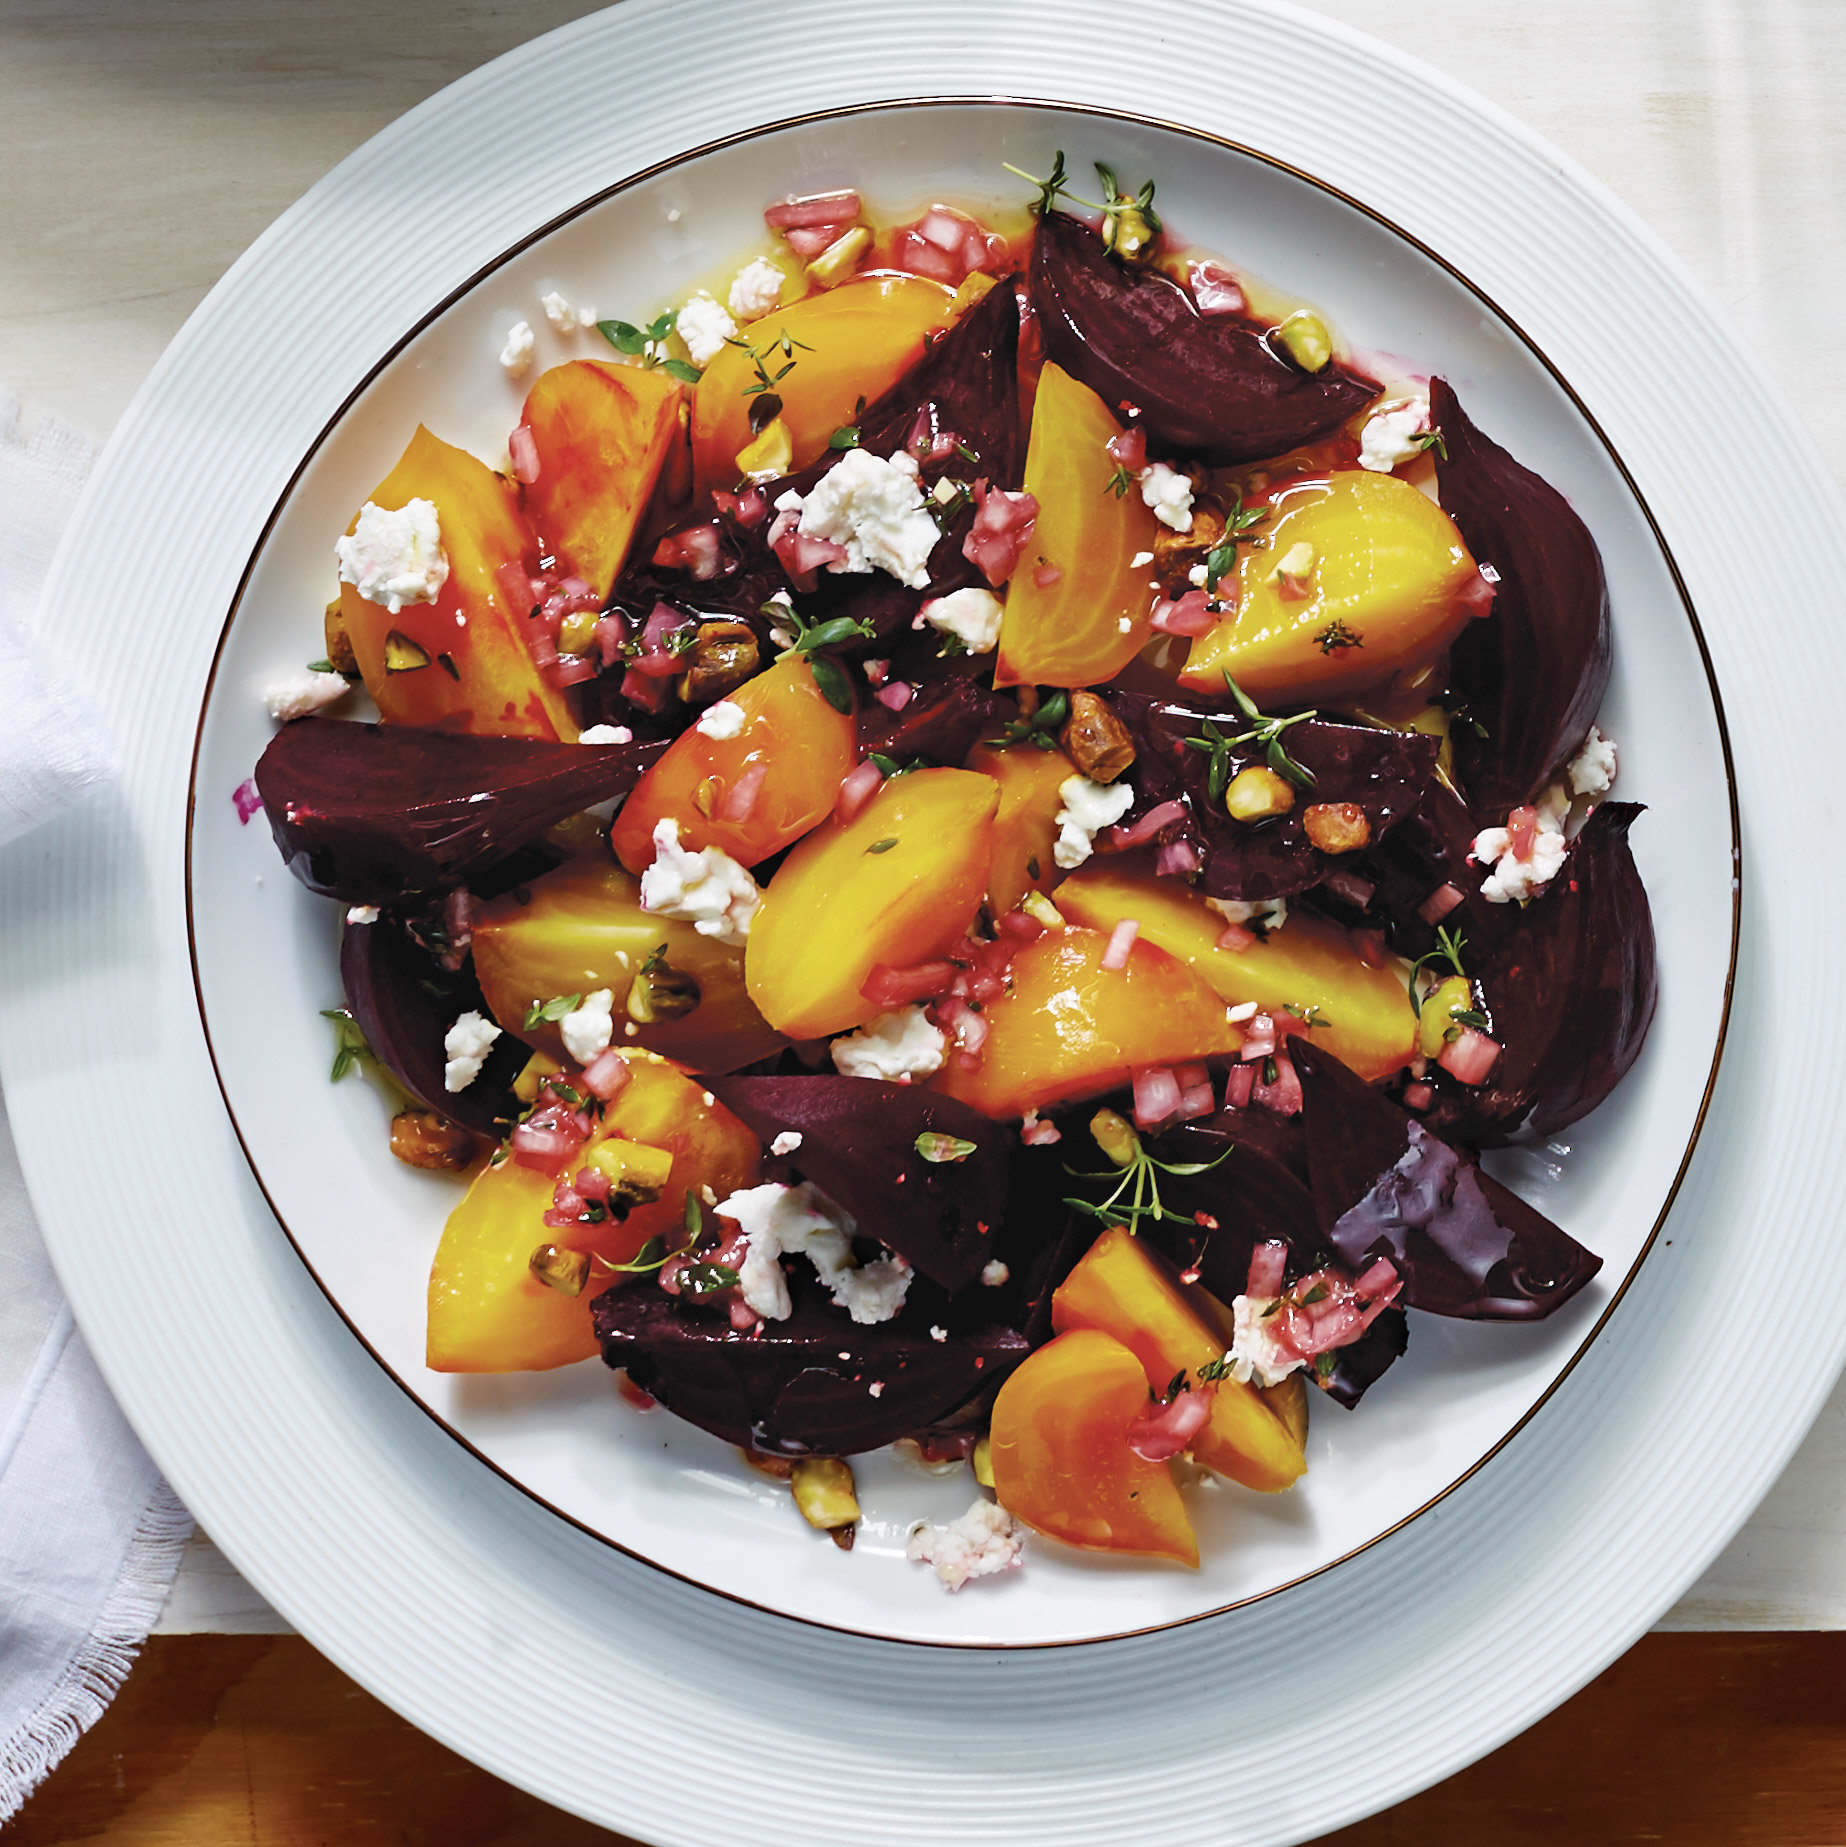 Spring Beets with Rhubarb Vinaigrette